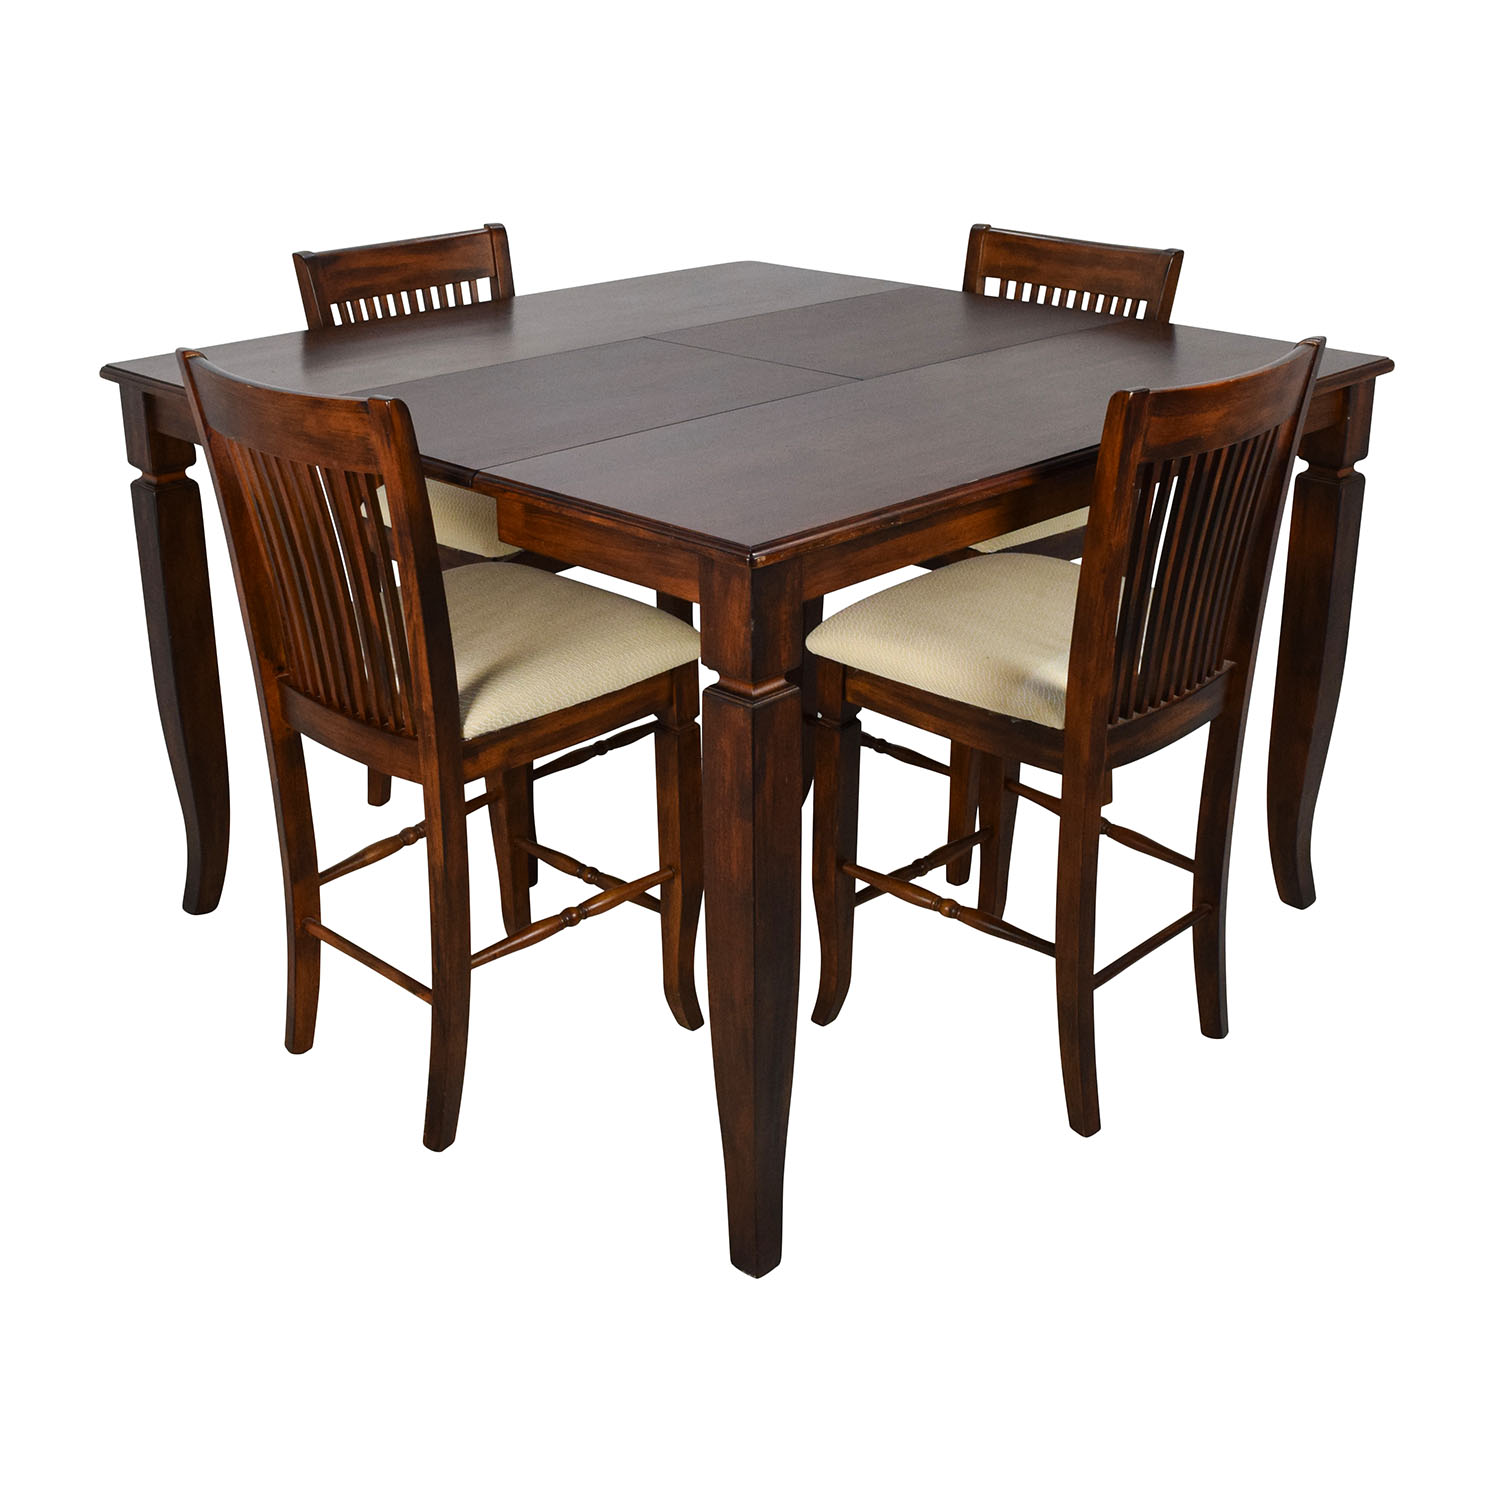 75 off tall extendable dining room table set tables for Extendable dining table